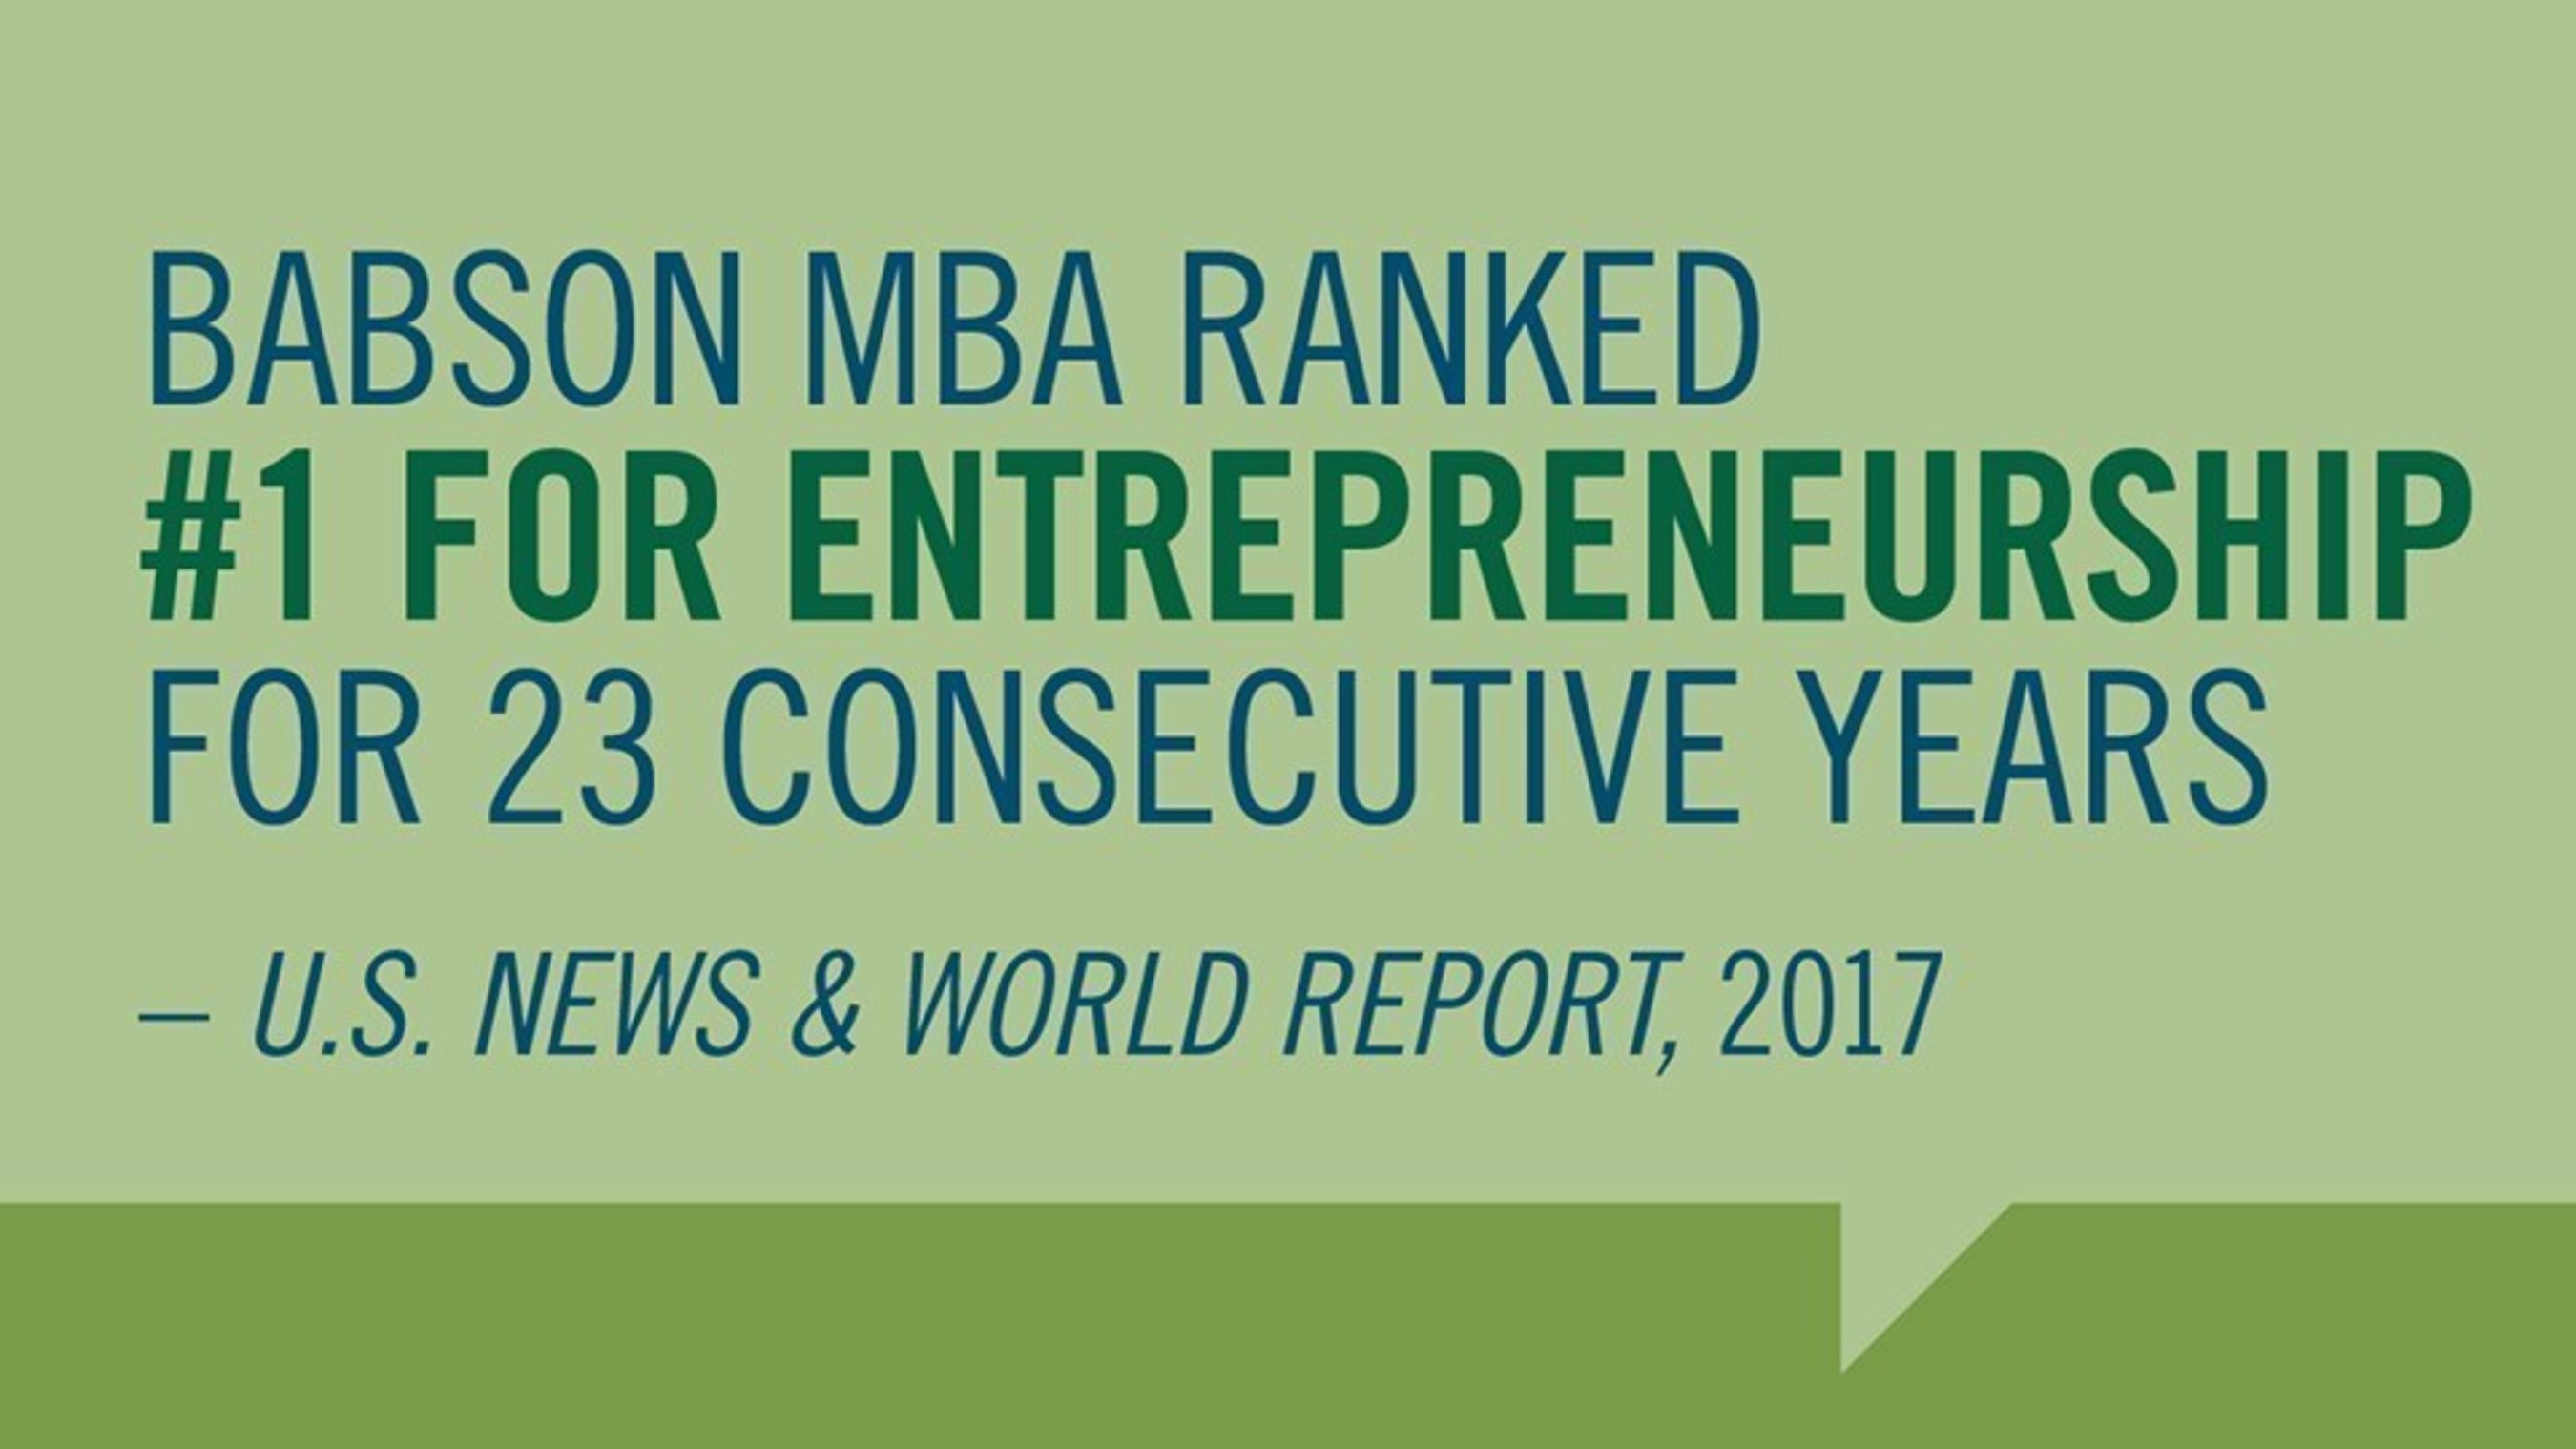 U.S. News & World Report Ranks Babson MBA No. 1 For Entrepreneurship